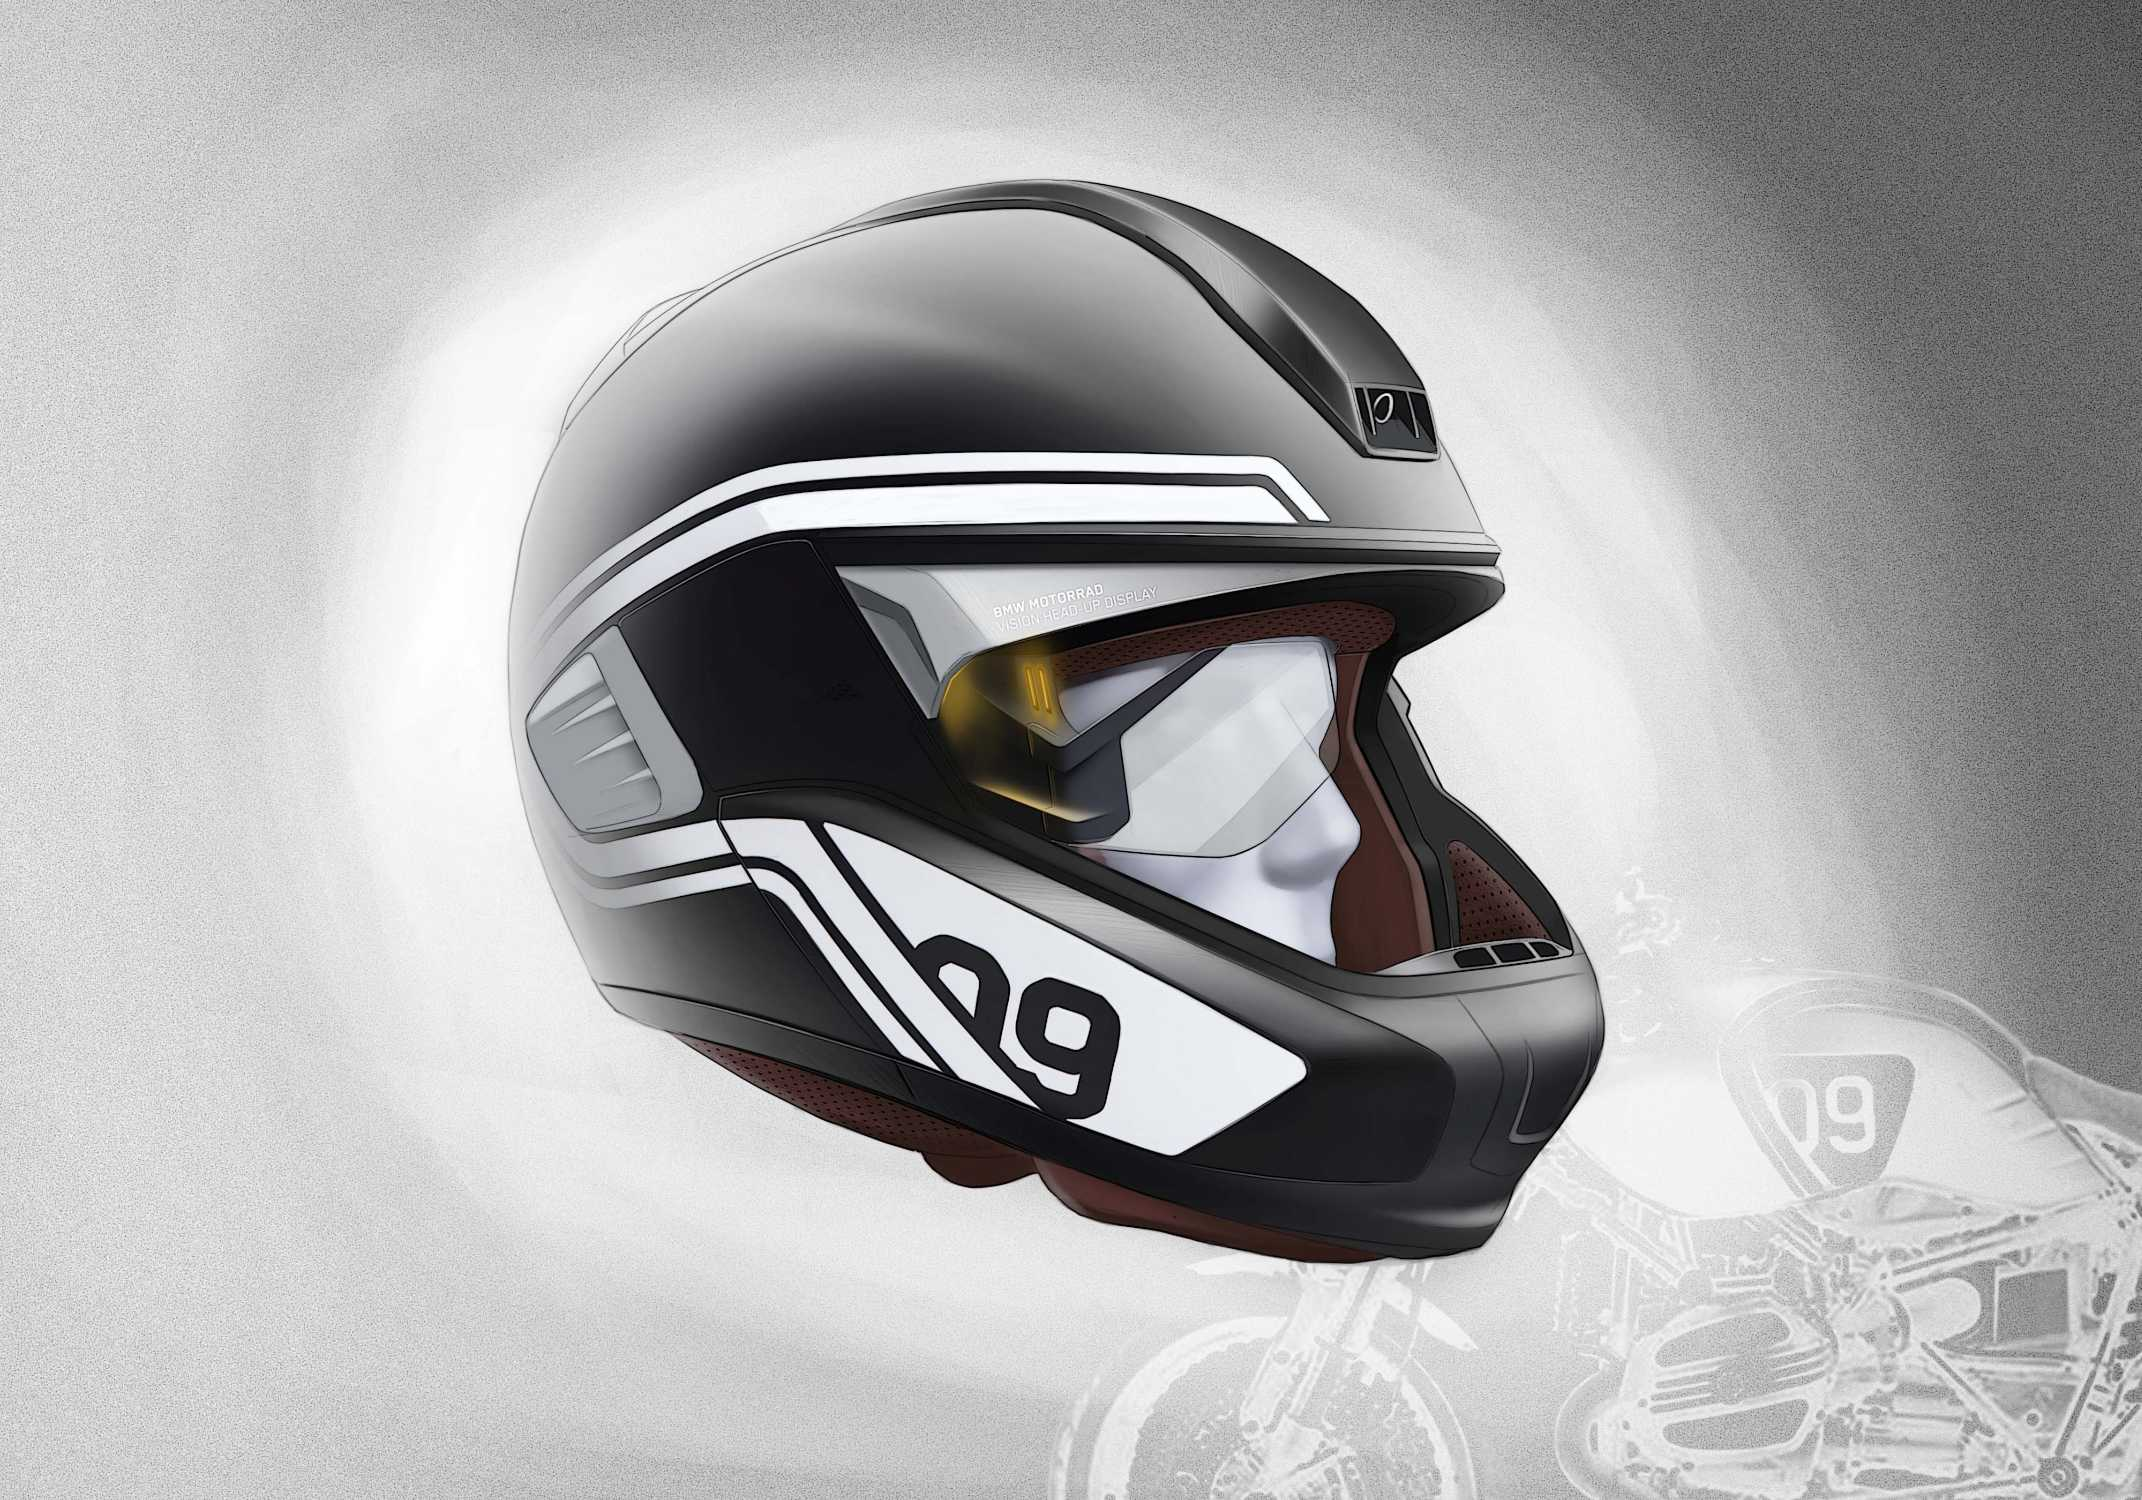 bmw motorrad presents concepts for motorcycle laser light and helmet with head up display. Black Bedroom Furniture Sets. Home Design Ideas